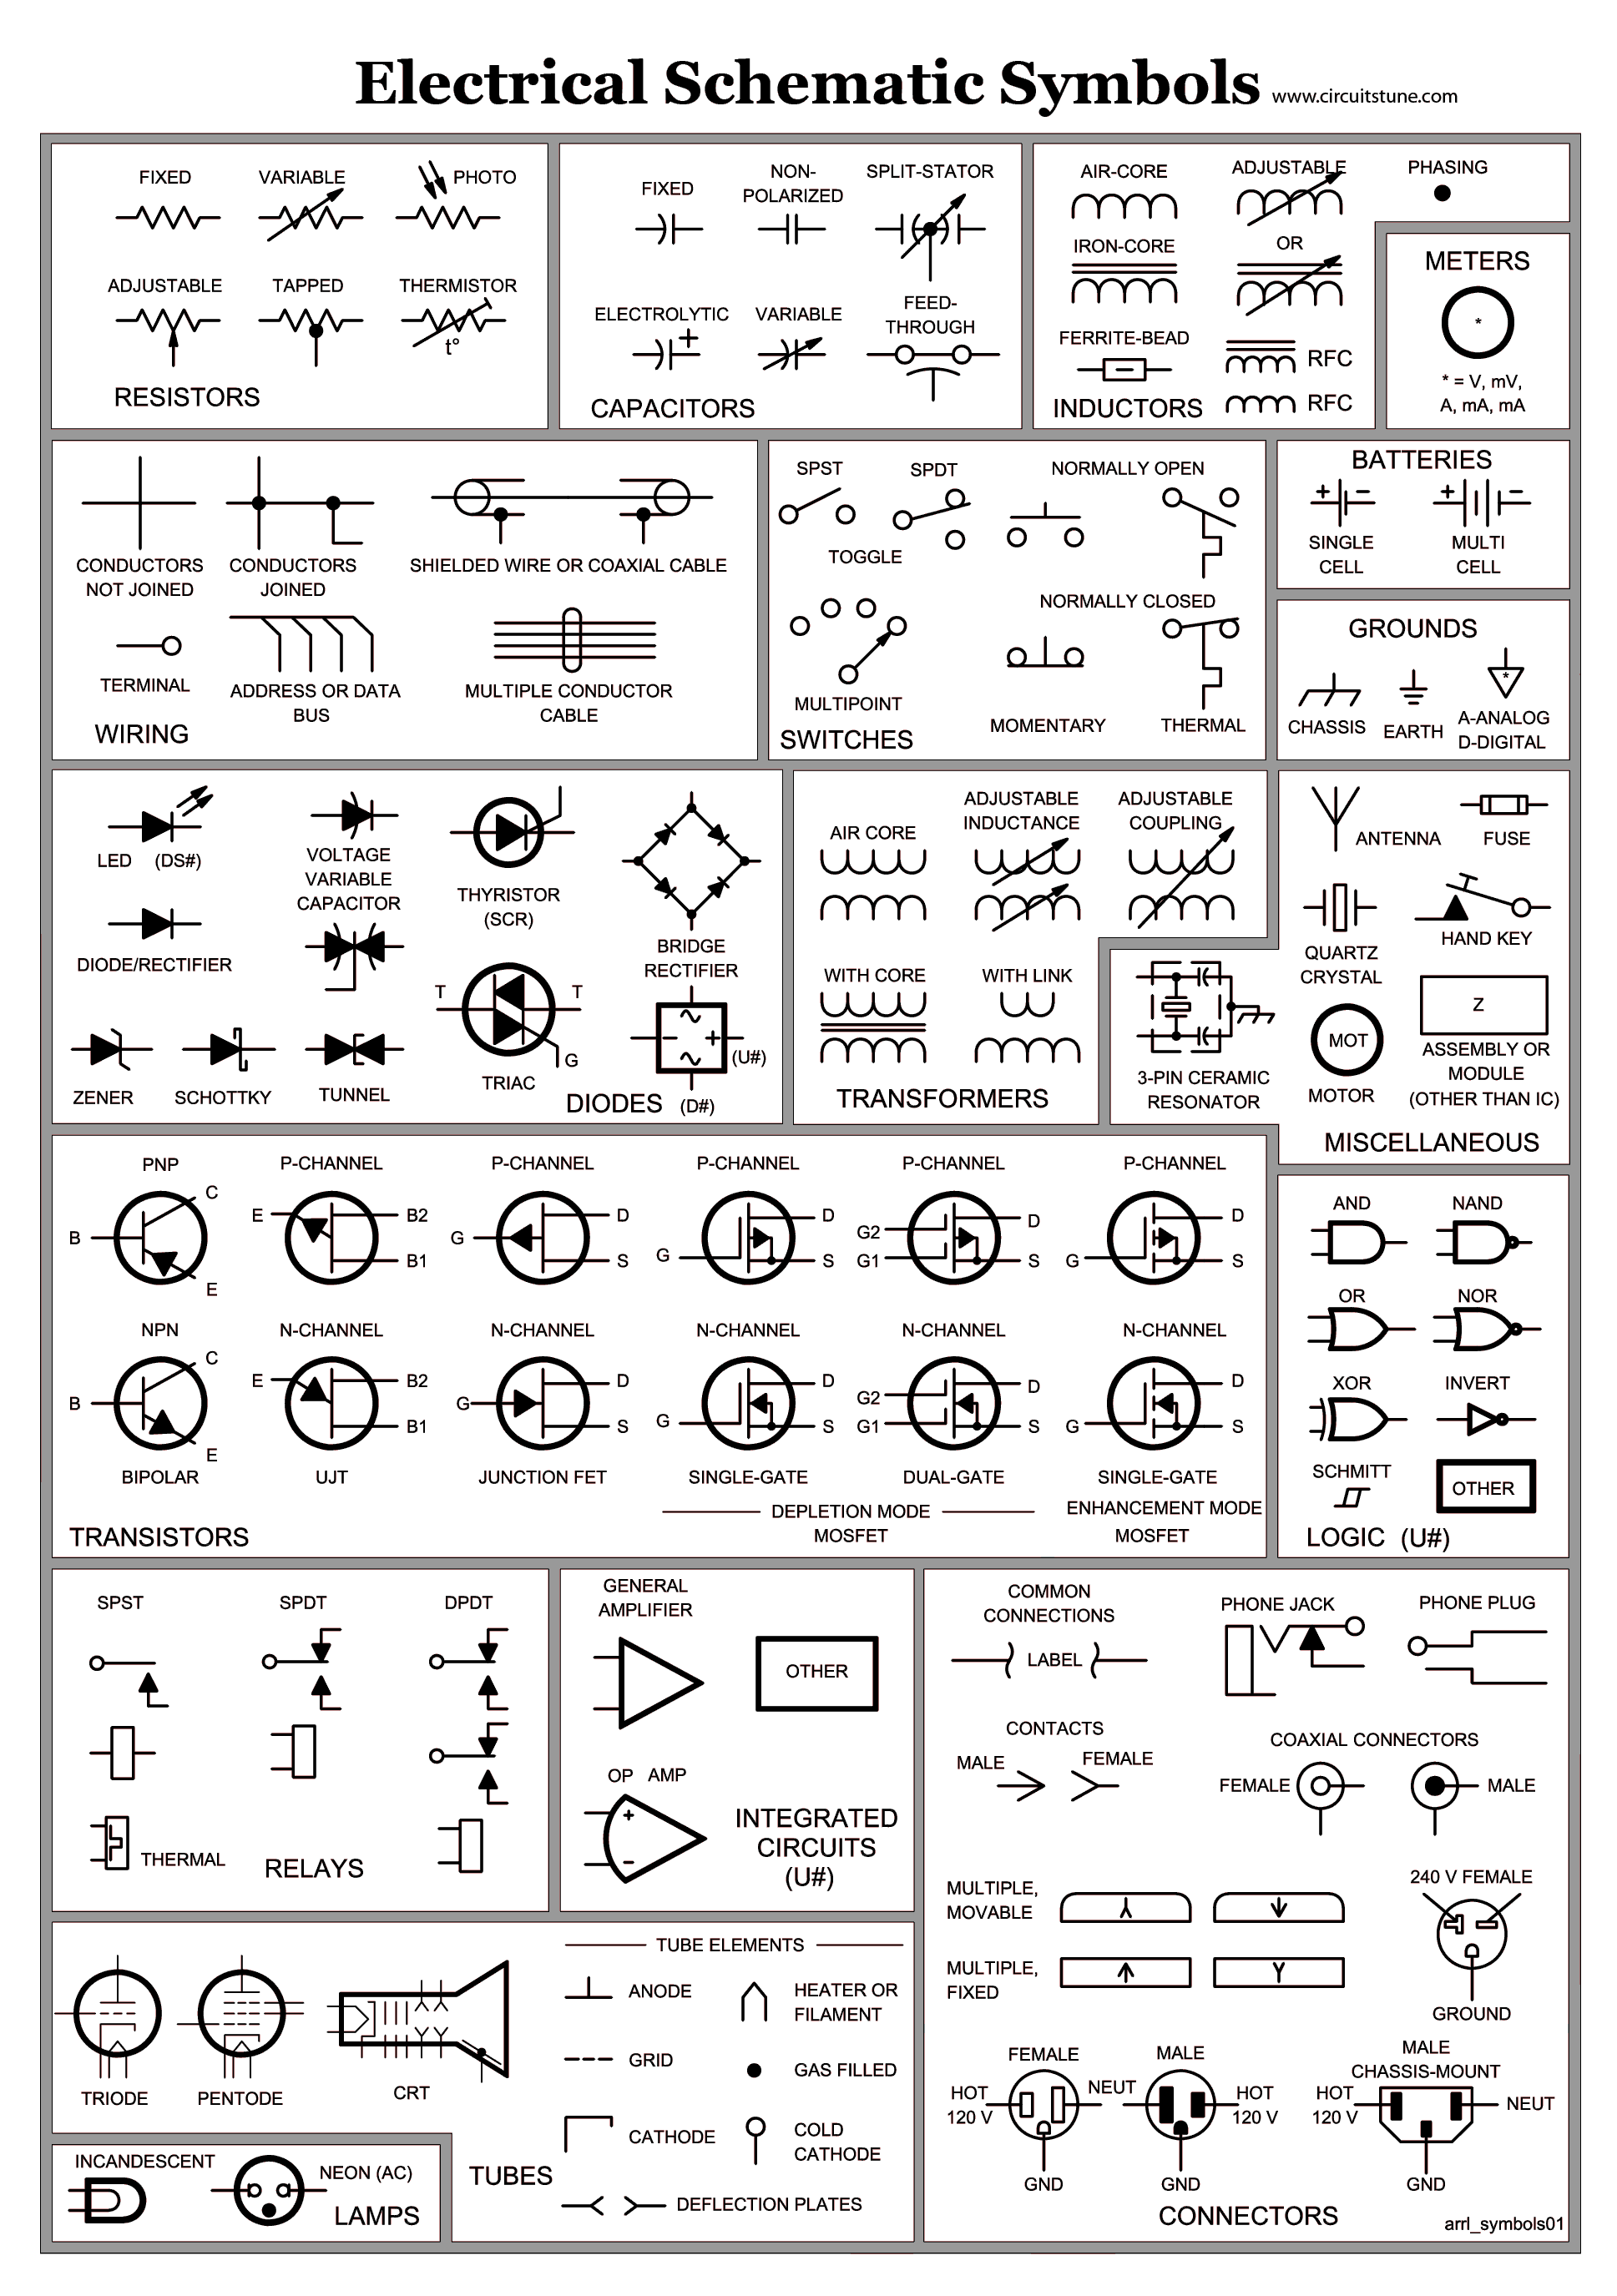 circuit schematic symbols  bmet wiki  fandom powered by wikia, wiring diagram